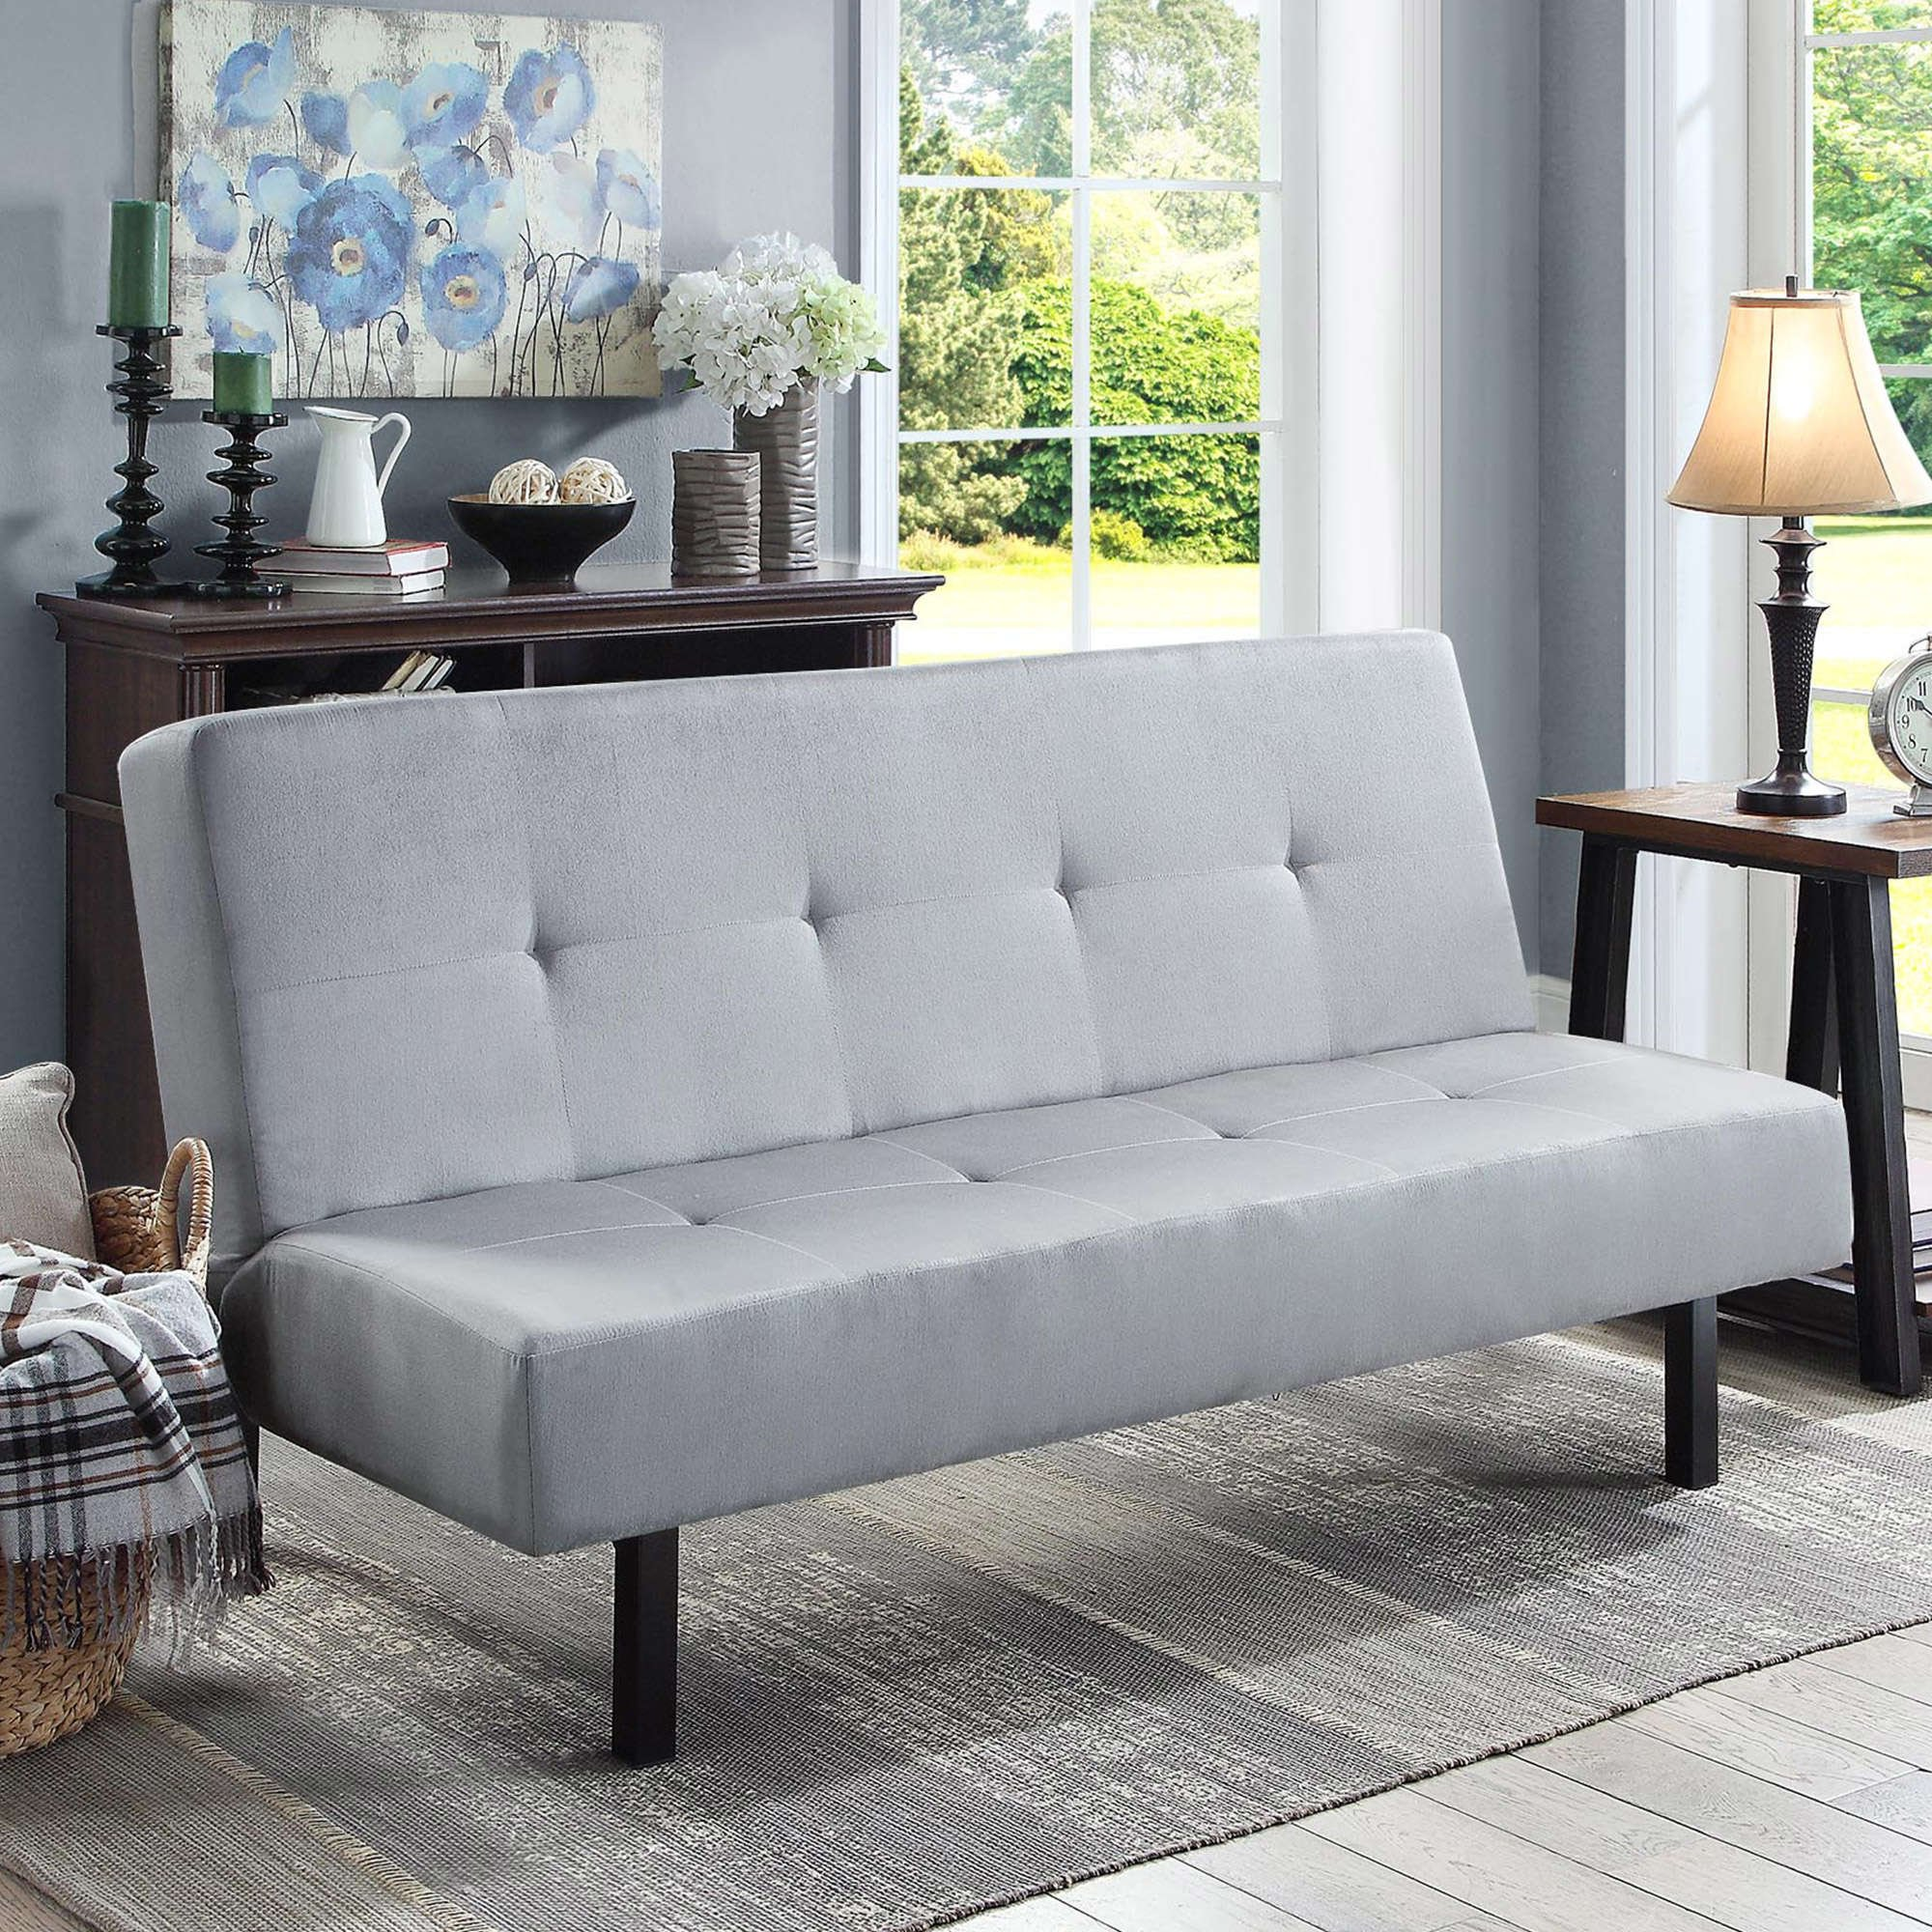 Gray Functional 3-Position Tufted Futon, Padded Cushions, Sturdy Square Metal Legs & Metal Frame, Plush Microfiber Upholstery, Ideal As a Sofa, Lounger & Sleeper, Amazing & Comfortable by eCom Rocket LLC